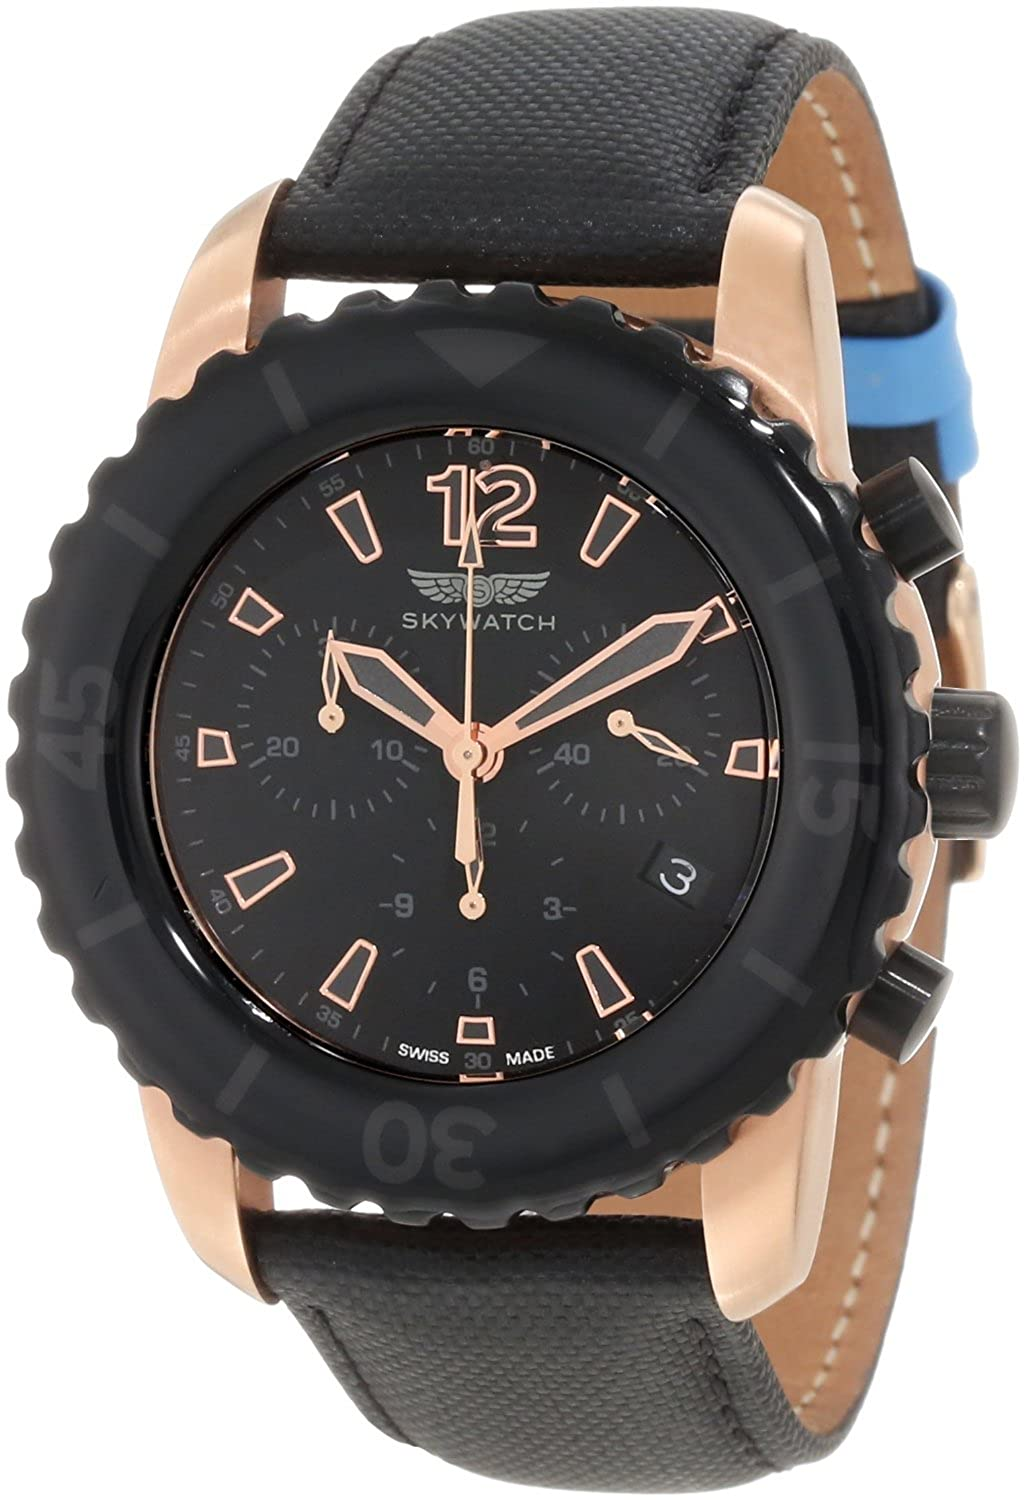 SkyWatch Chronograph Black Dial Men's Watch - CC1028